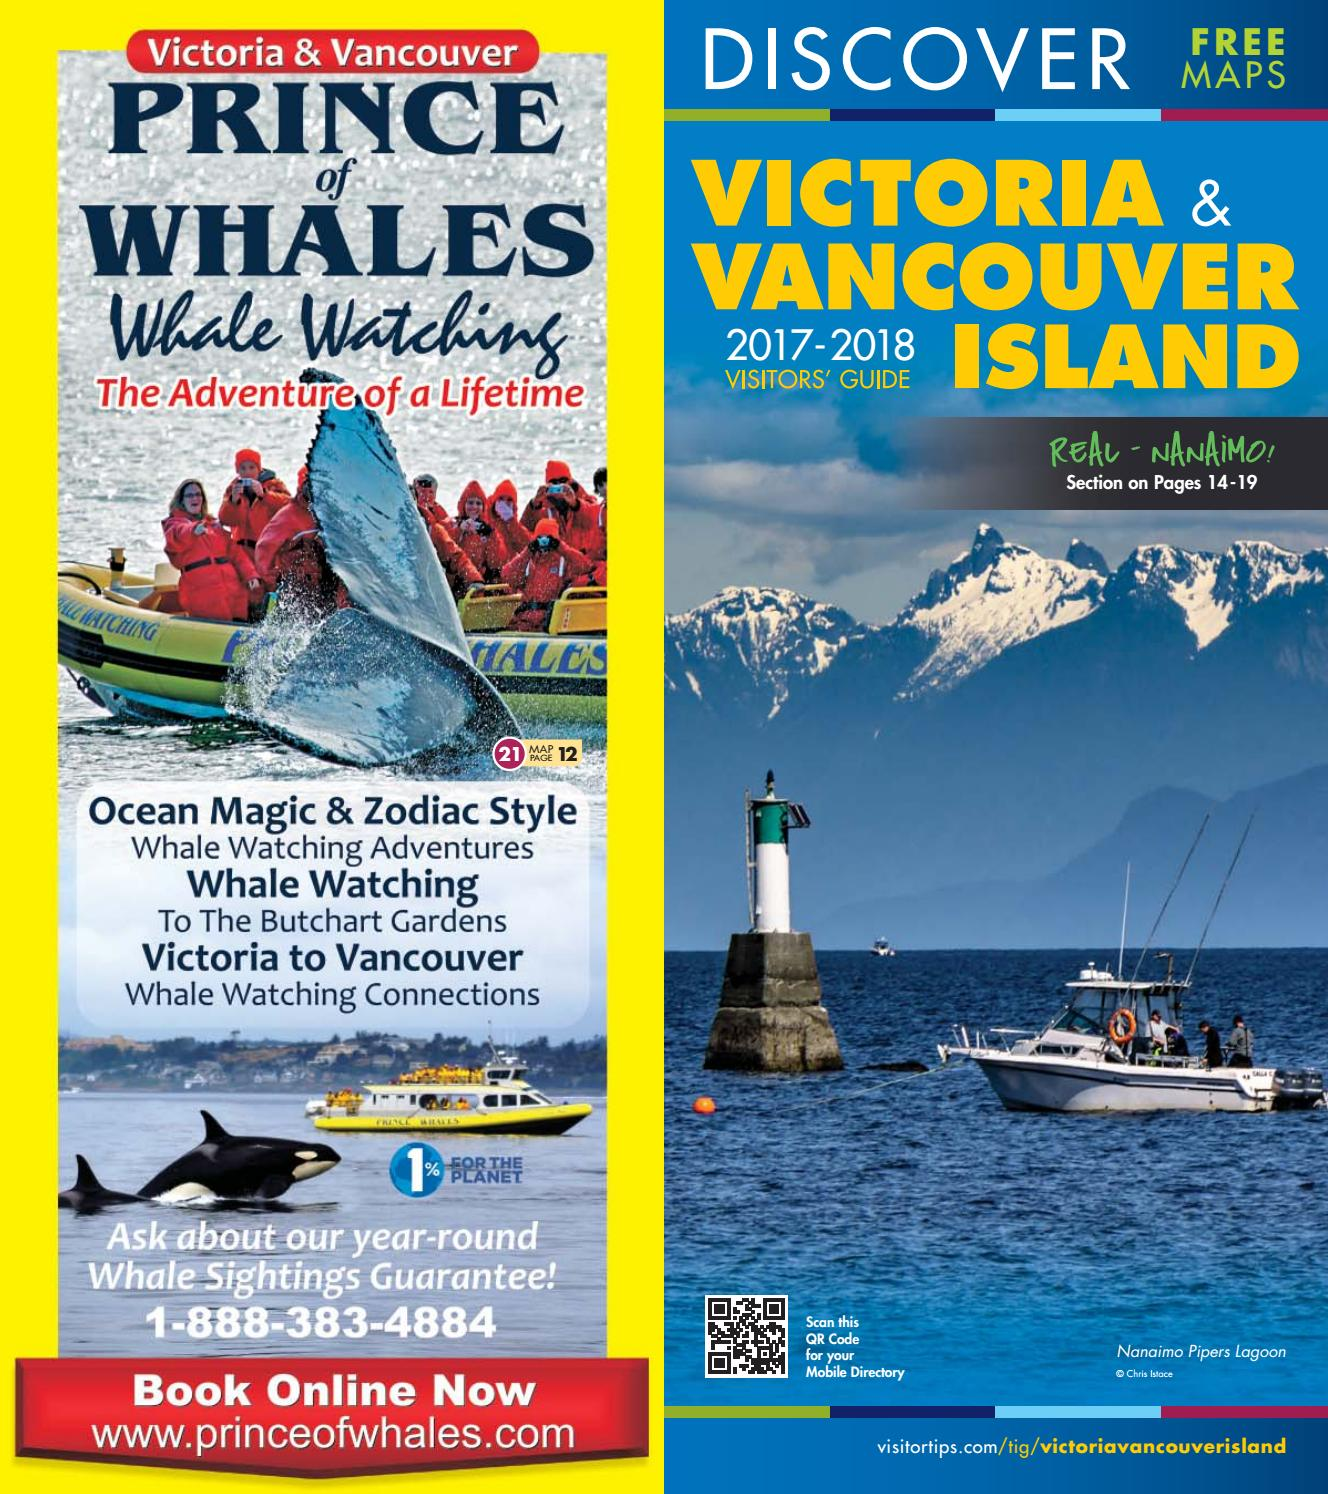 2017 2018 Victoria & Vancouver Island Visitors Guide by Certified